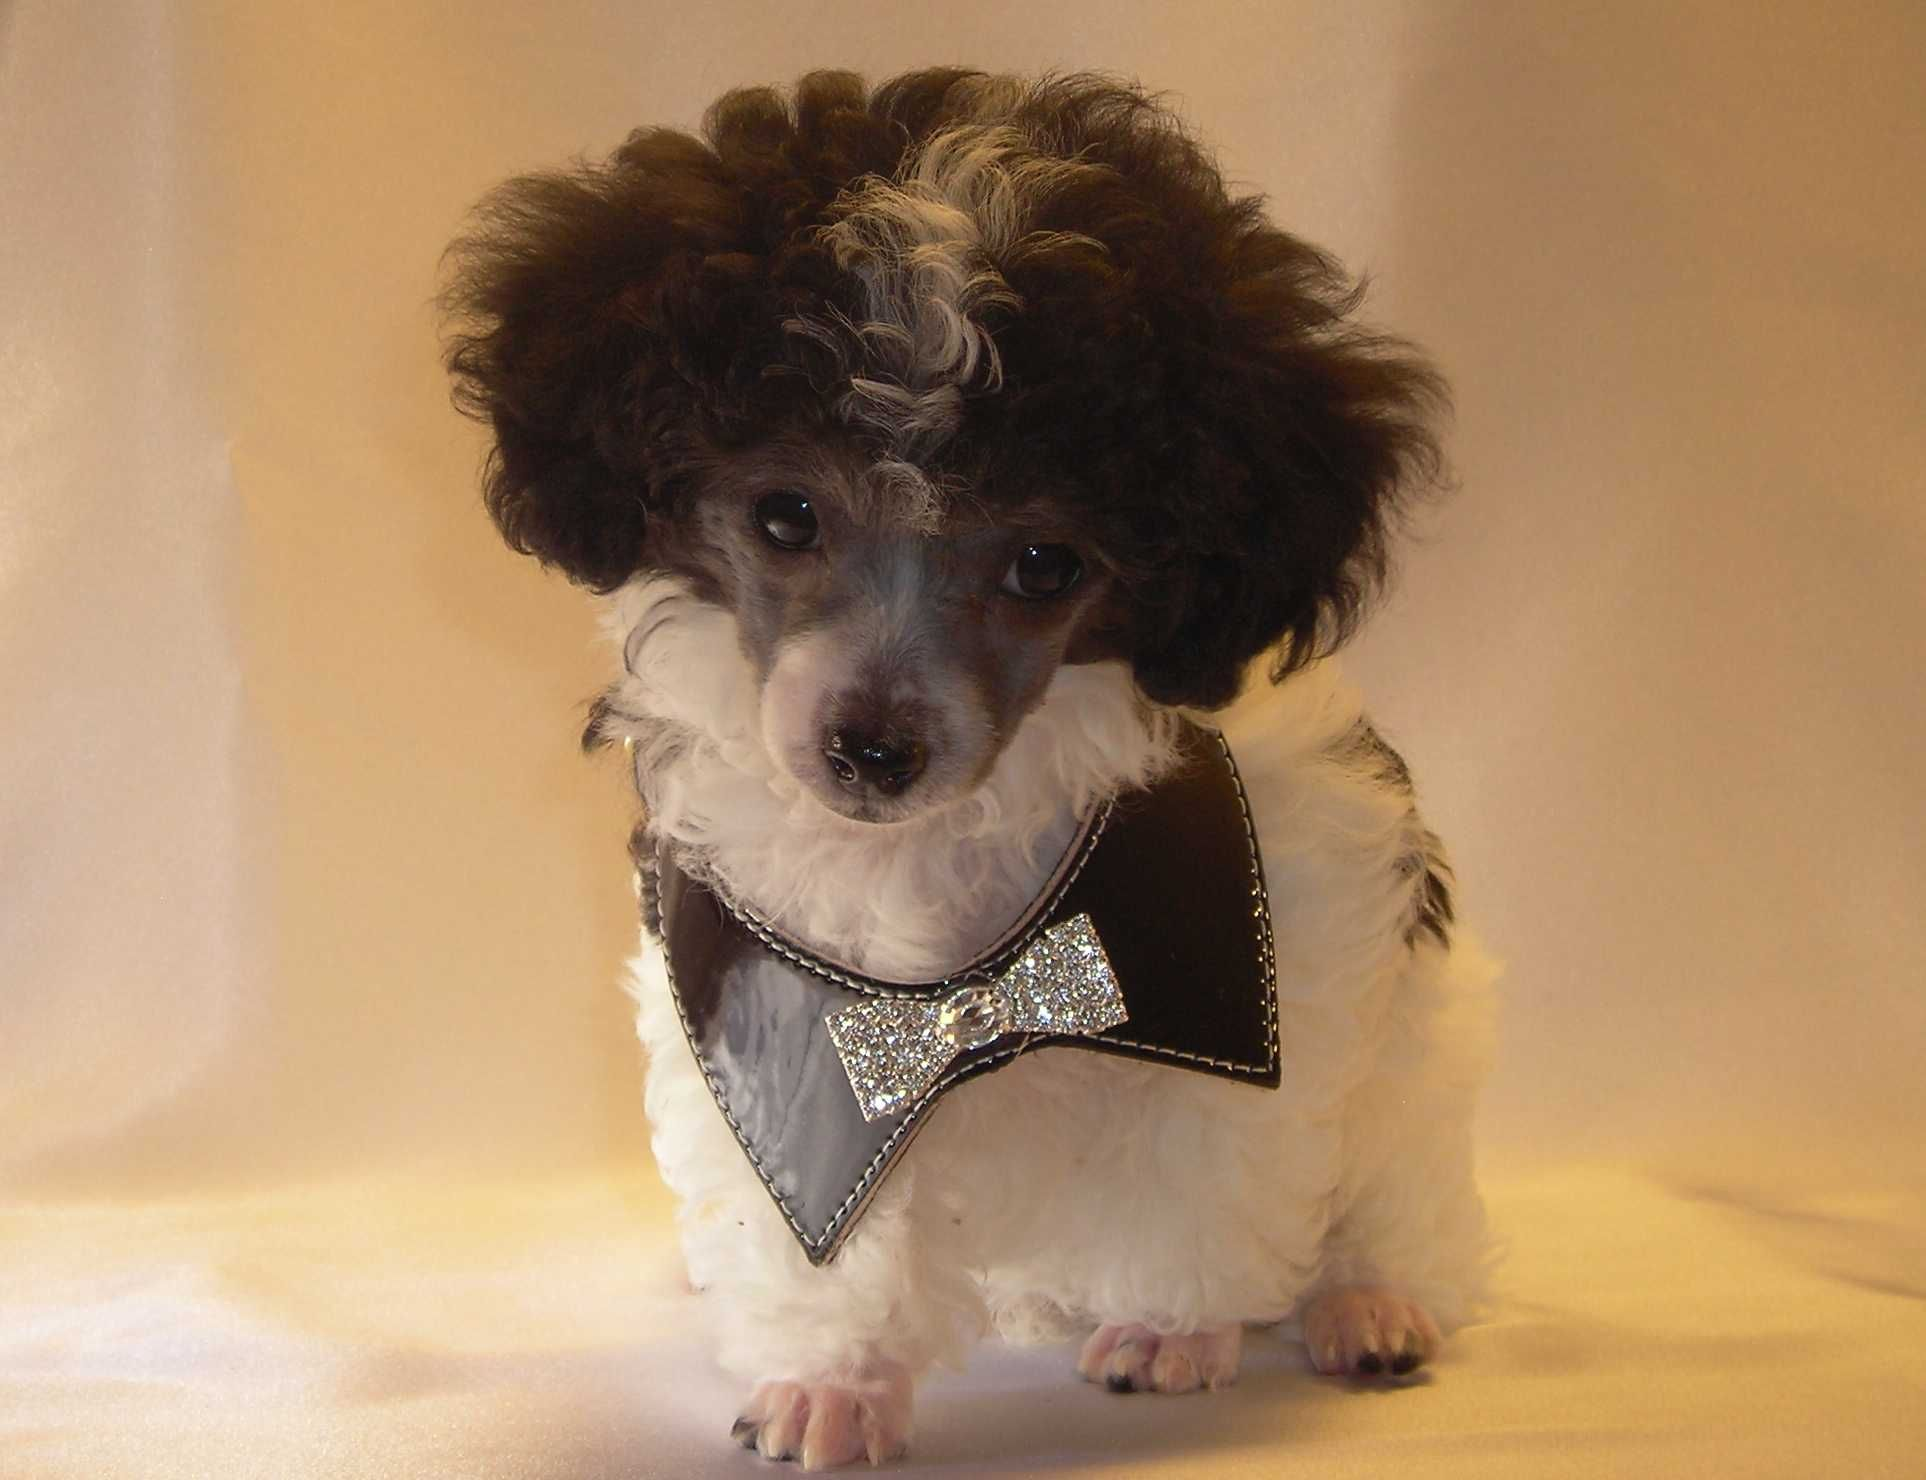 Teacup Poodle My Little Charlie Is One Of These And He Is Such Good Company Tea Cup Poodle Poodle Teacup Poodle Puppies